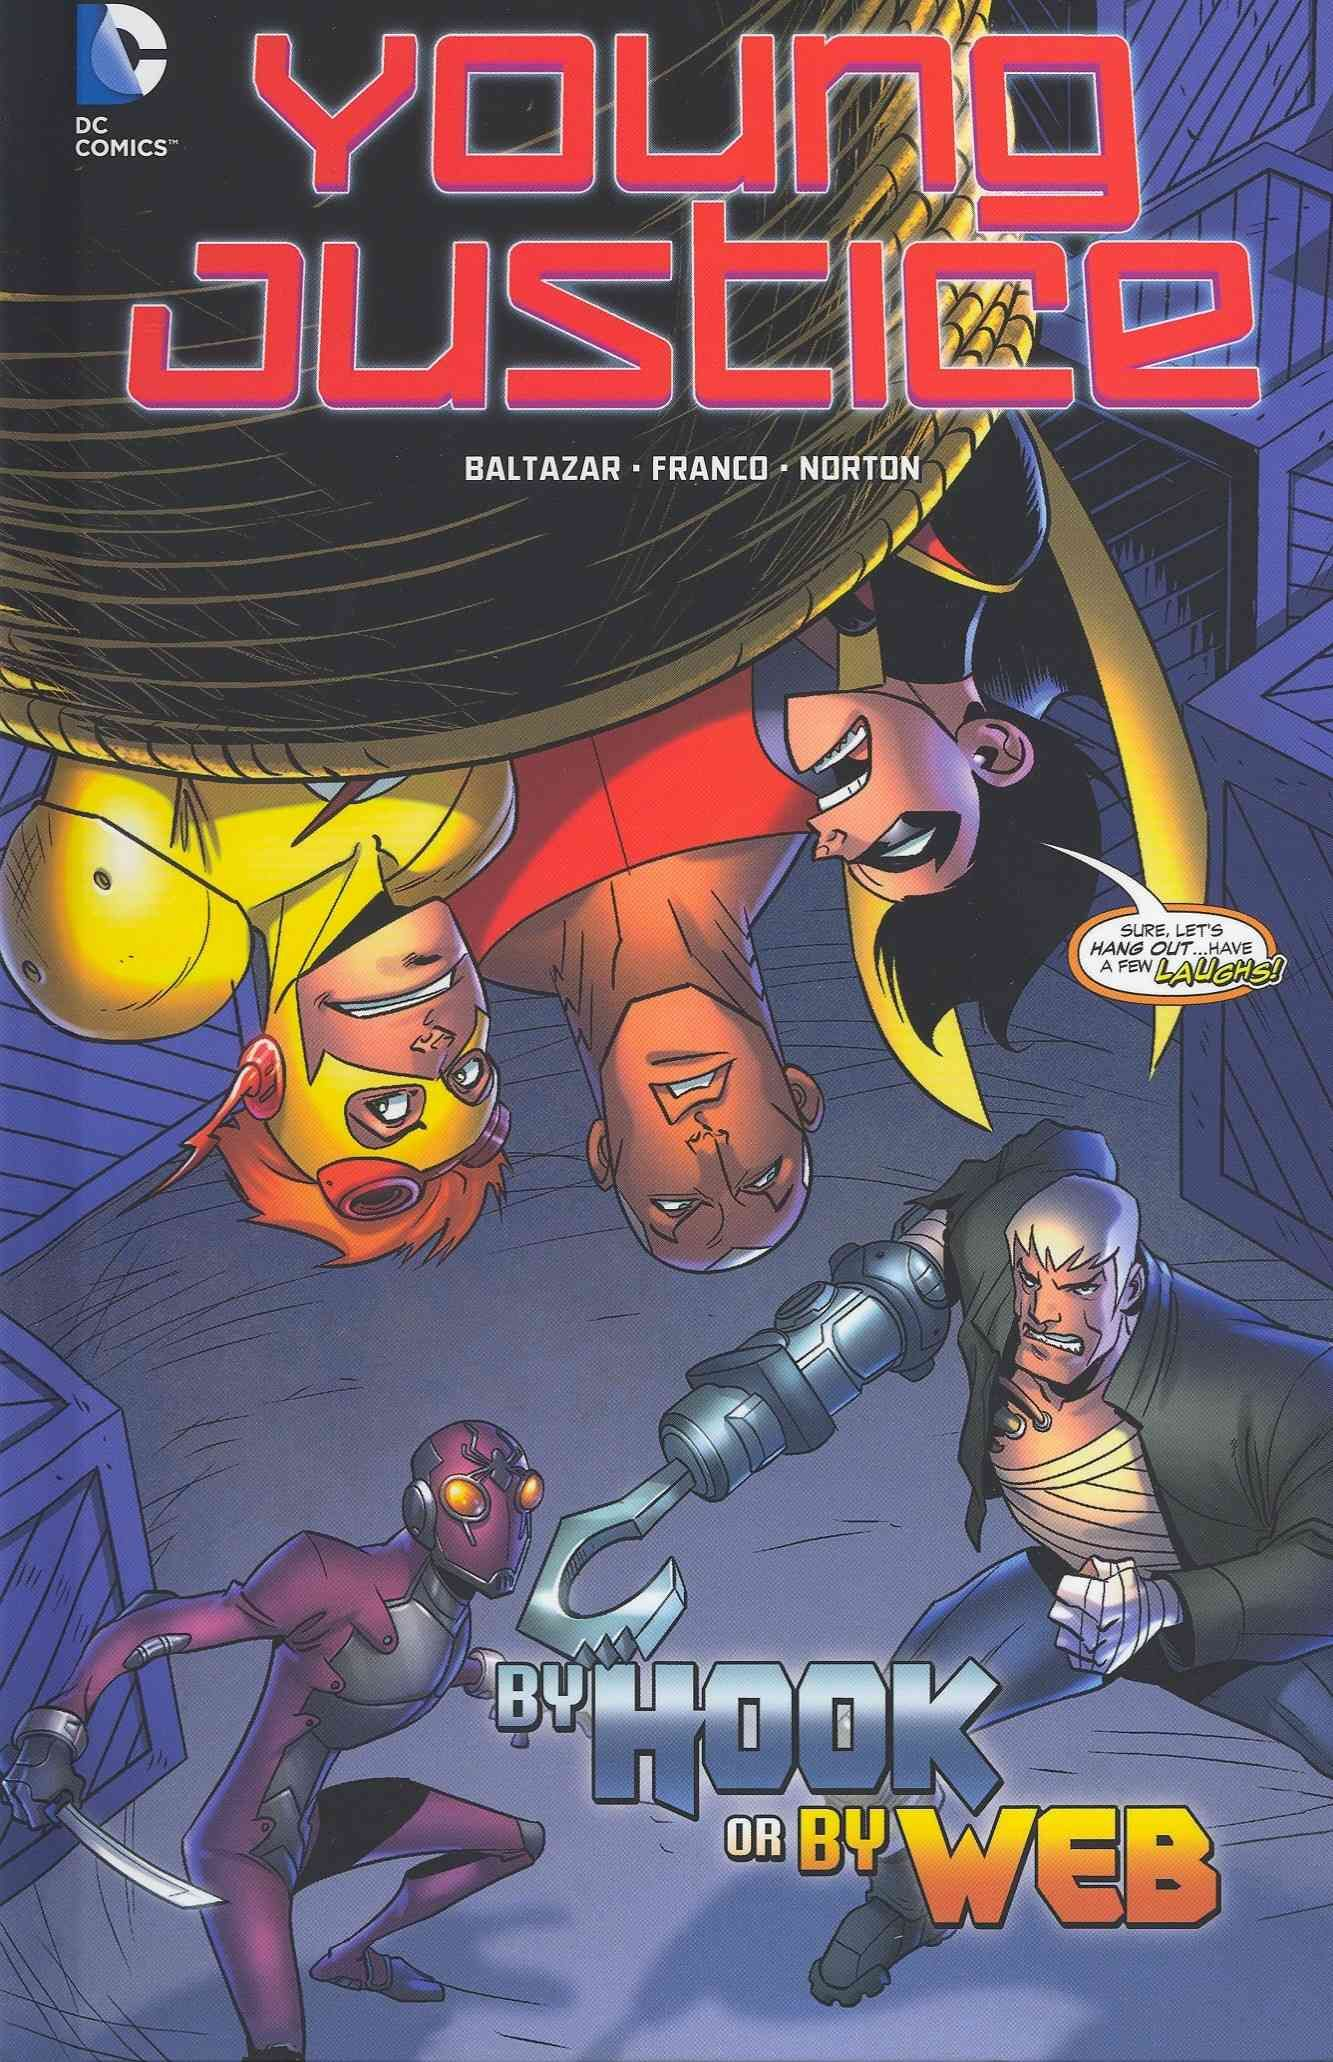 Robin, Aqualad, and Kid Flash must work together to free themselves from the menace of the League of Shadows and rescue Selena Gonzalez--but things may be a little more complicated than they seem.